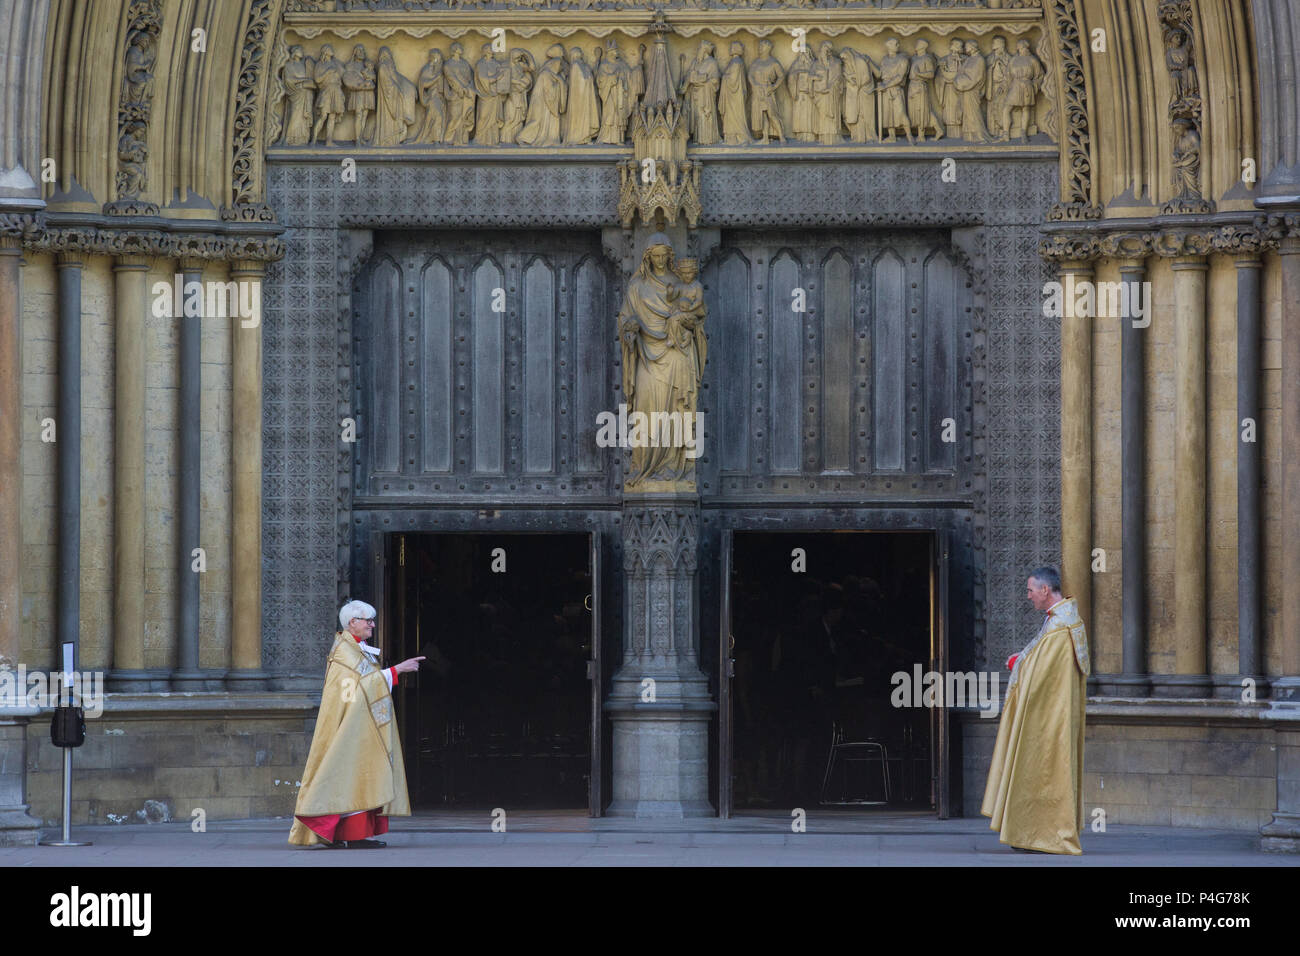 London, UK. 22nd June, 2018. Clergymen stand at the door of Westminster Abbey to greet guests, including families of the Windrush generation, leaving following a thanksgiving service to mark 70 years since the arrival of Caribbean migrants on the Empire Windrush ship to the UK. Credit: Mark Kerrison/Alamy Live News - Stock Image